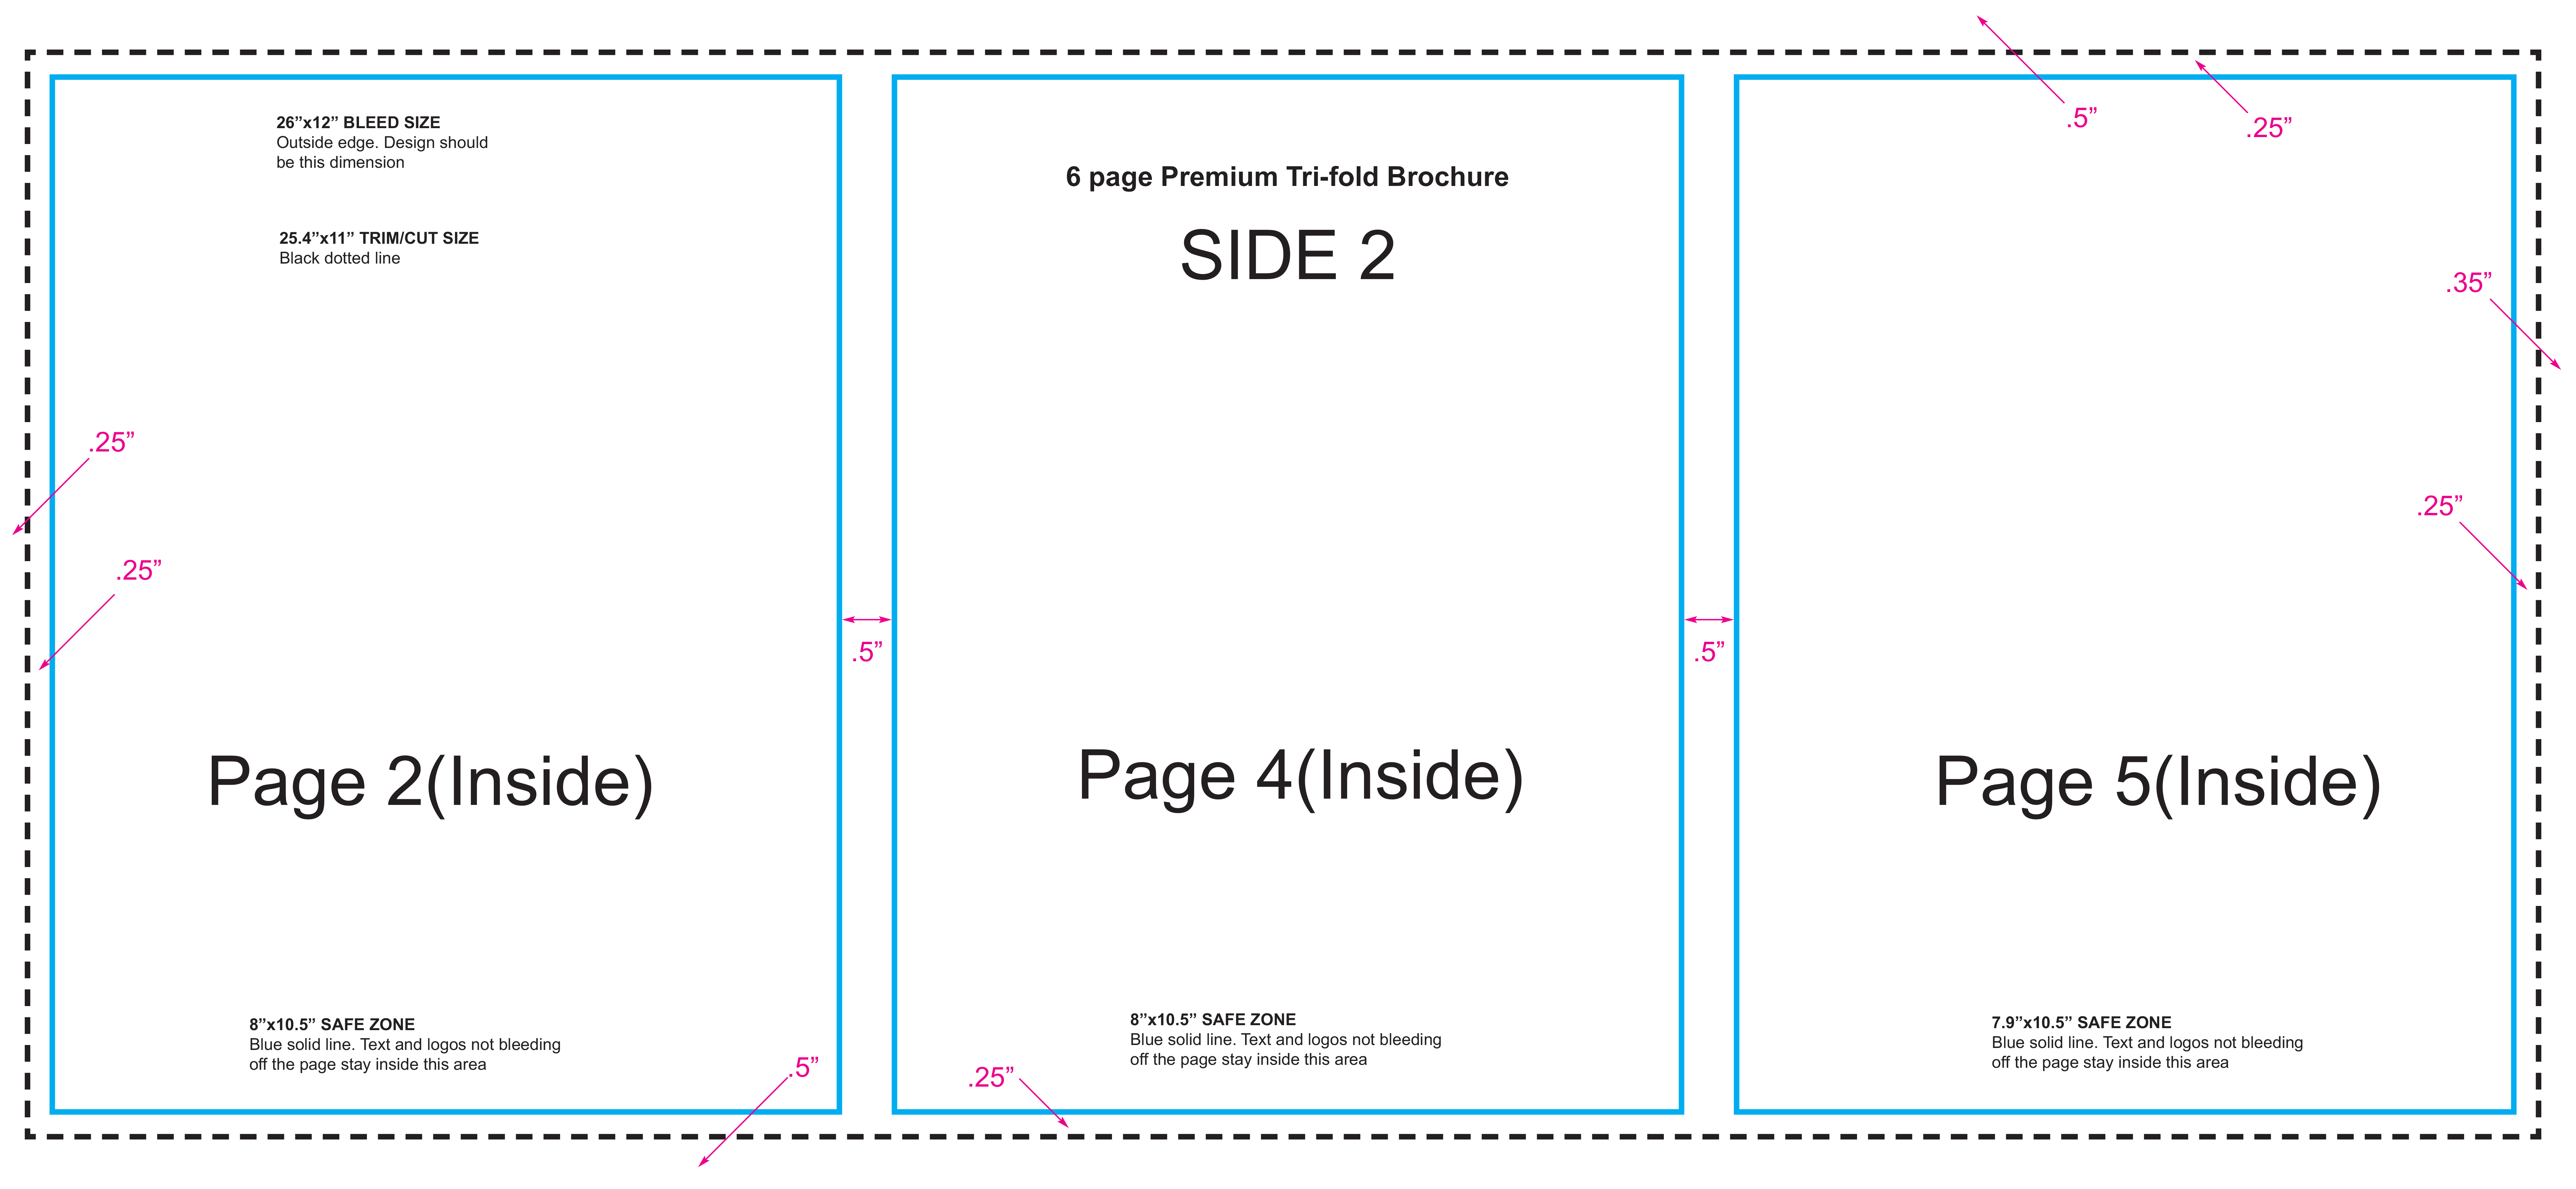 6 Page Book Style Design Layout Guide_26x12P – HomeVisit Support Center